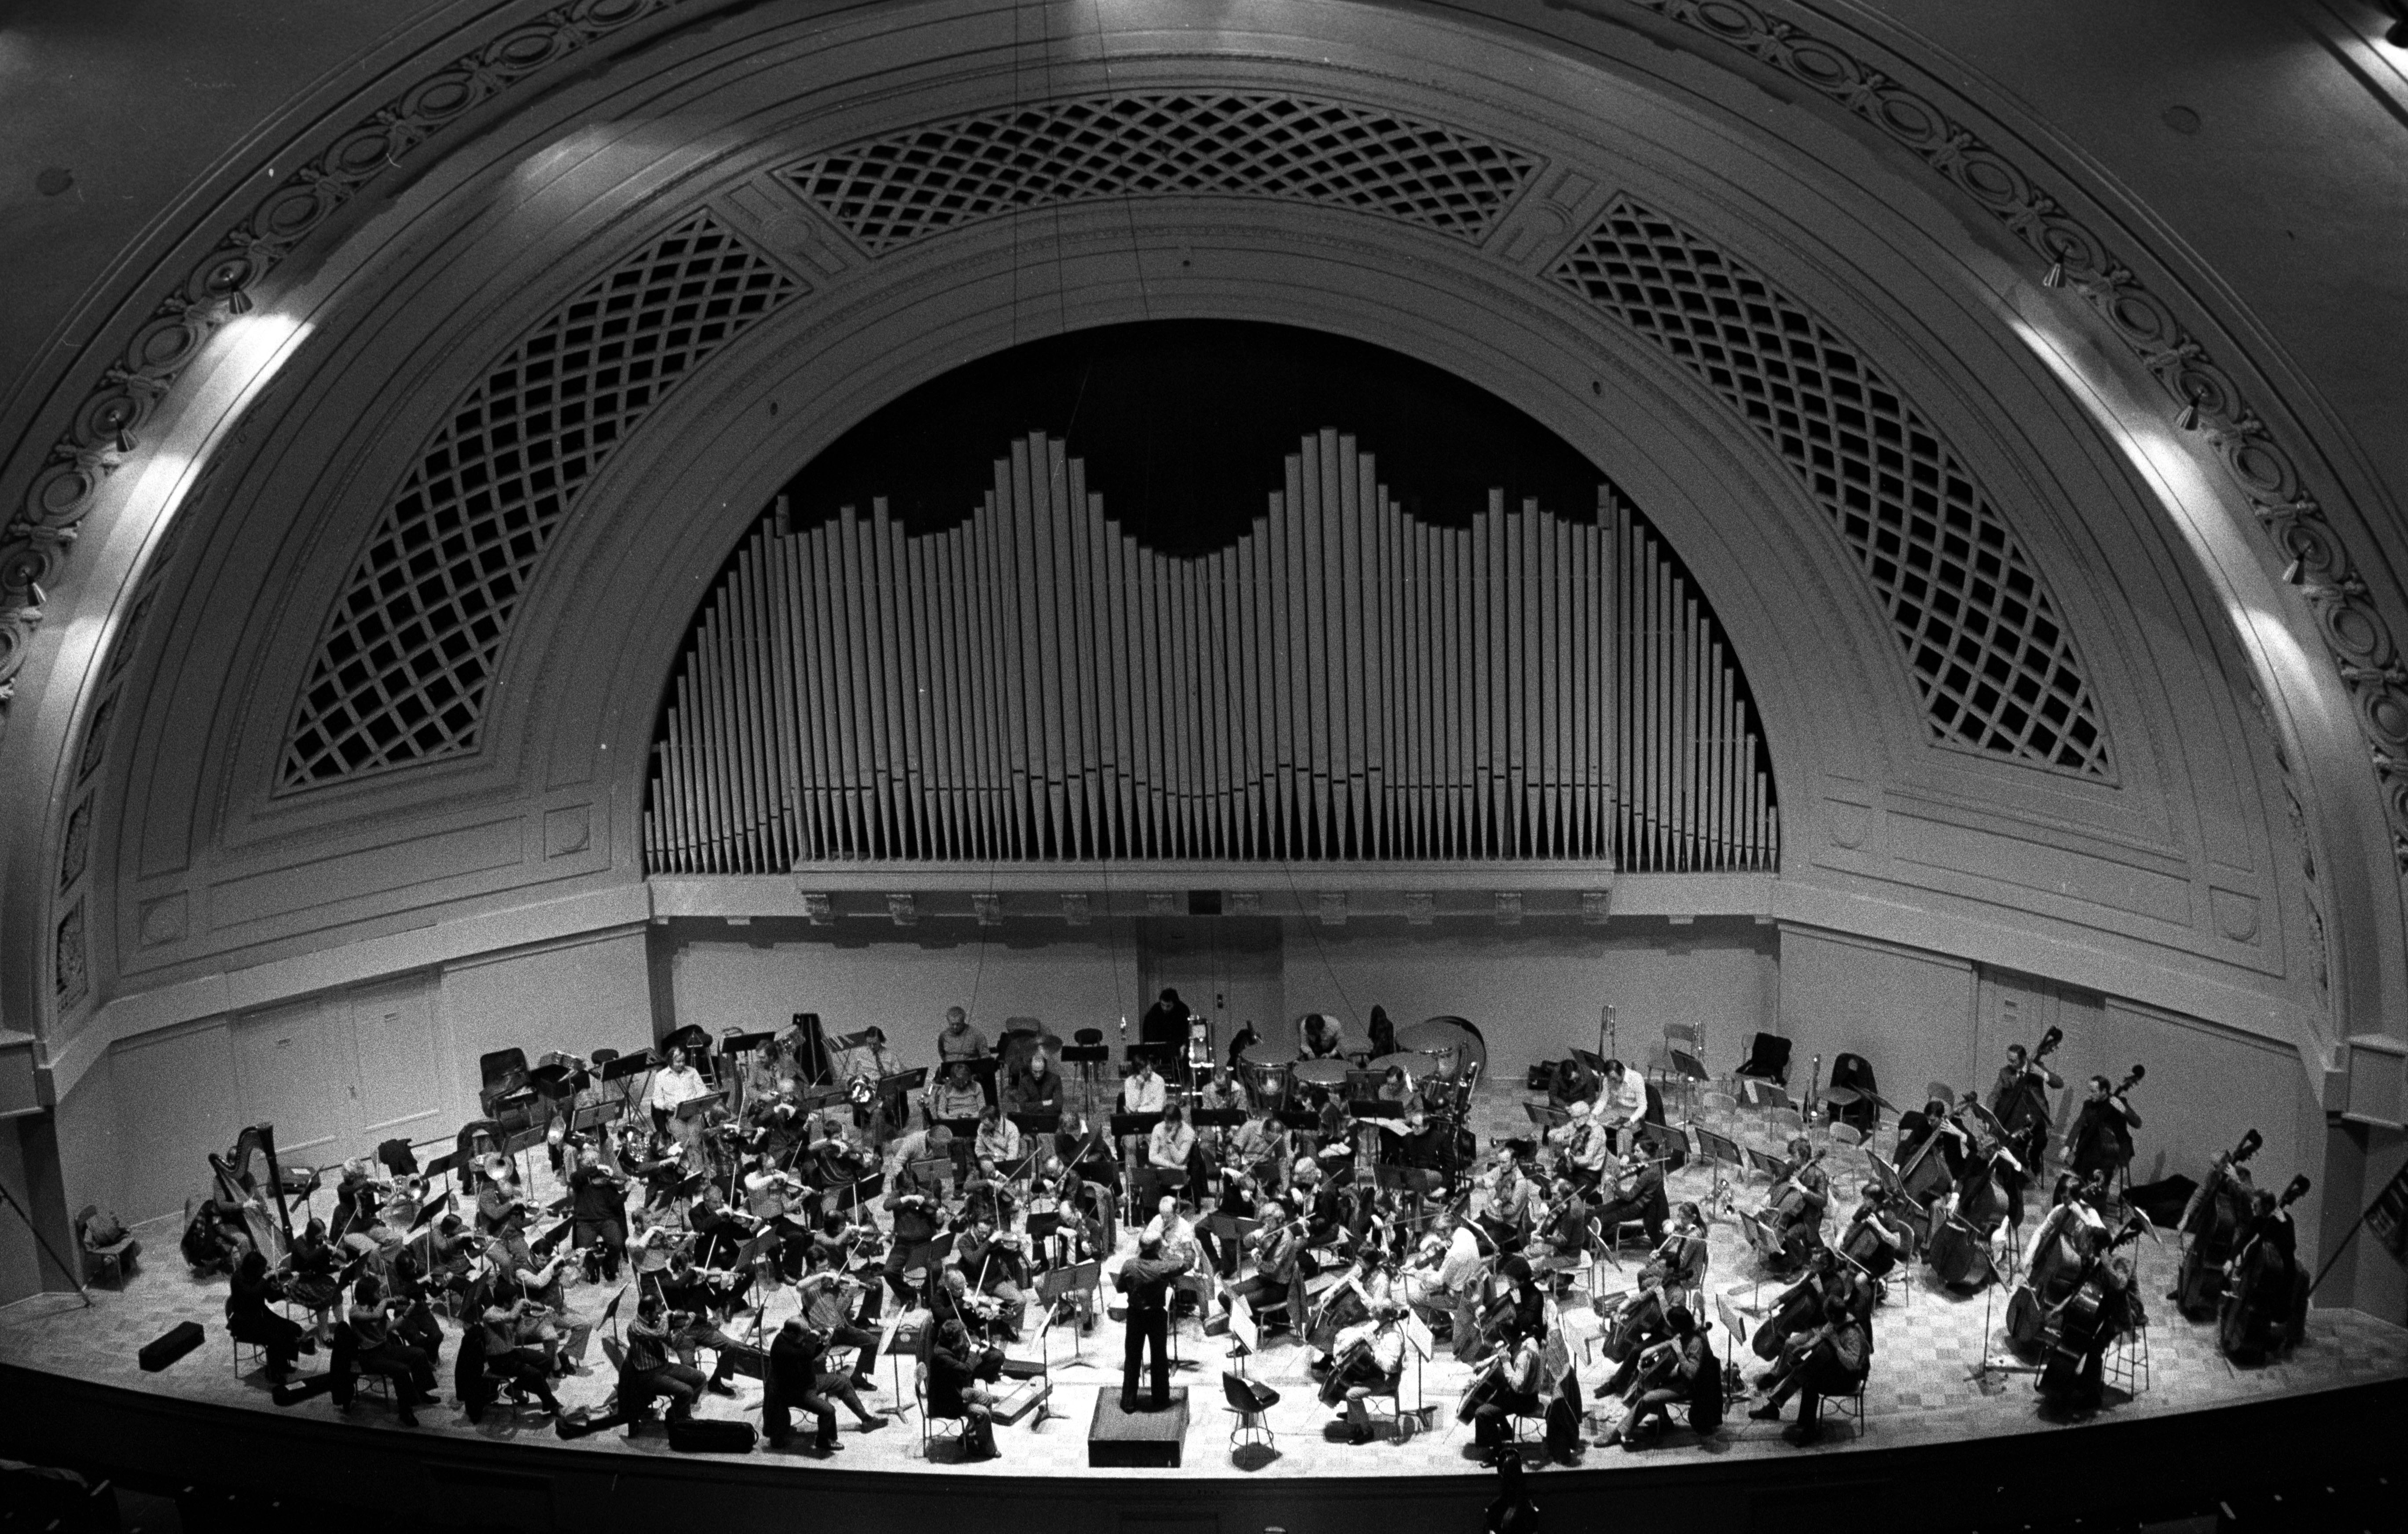 The London Philharmonic Orchestra in Rehearsal at Hill Auditorium, November 1976 image